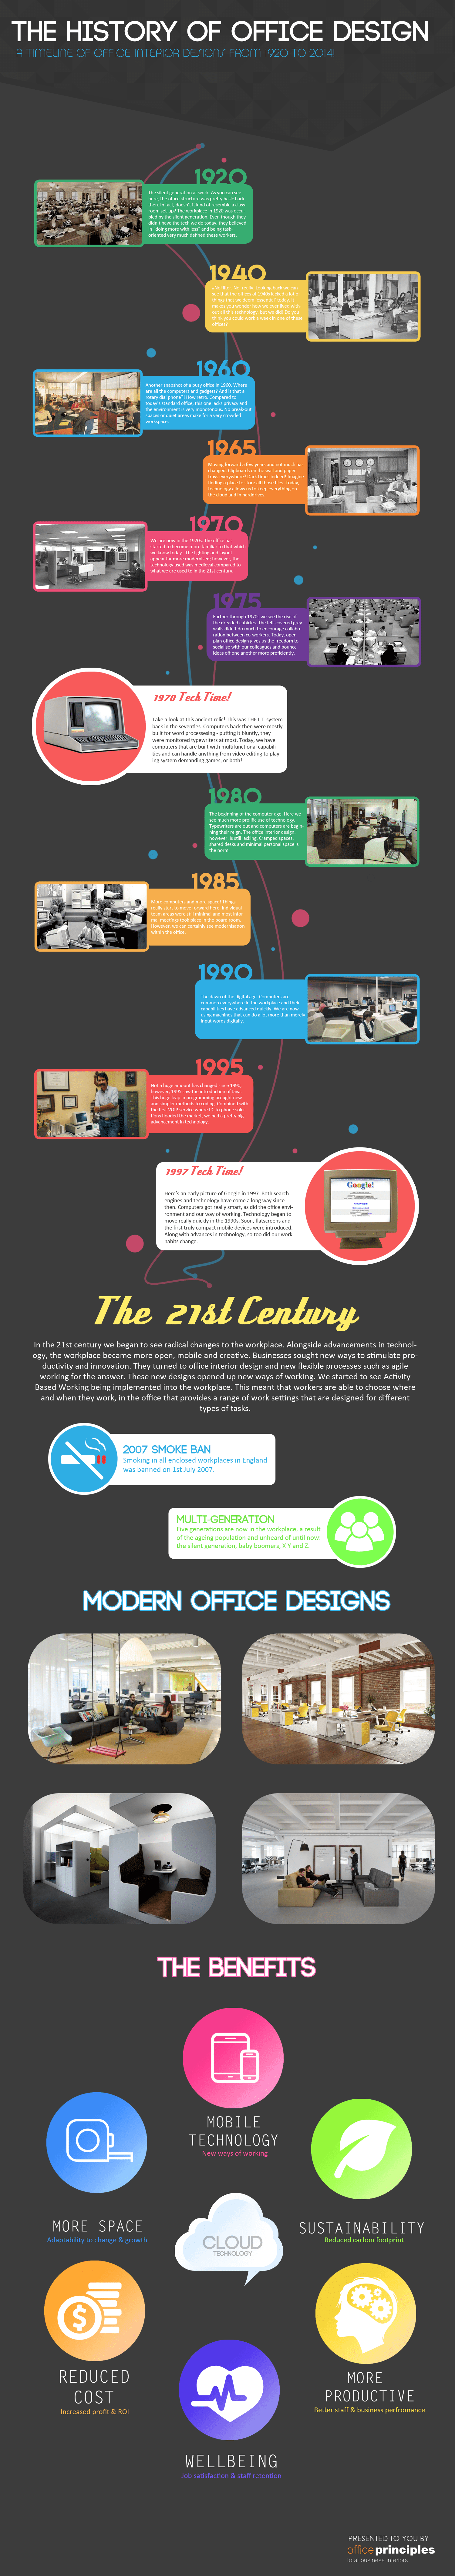 history office designs.  history timeline infographic  final on history office designs f